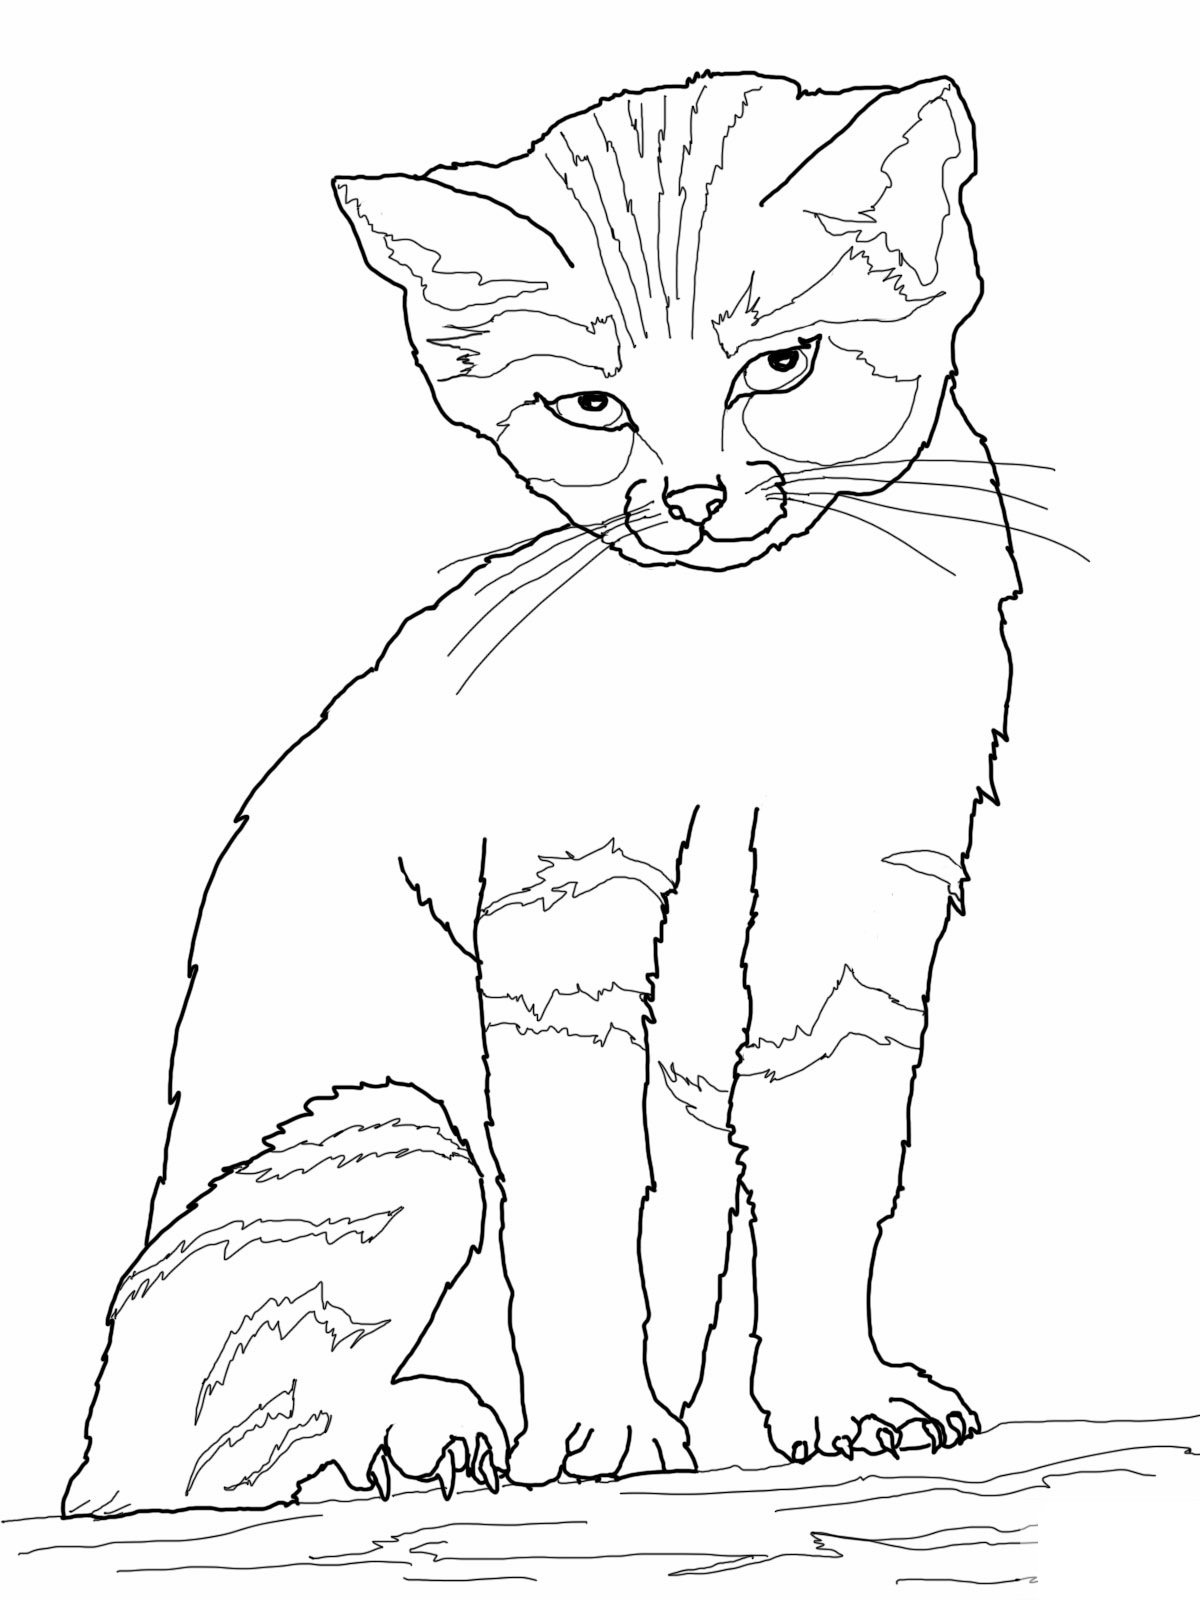 Cats Drawing For Kids at GetDrawings.com | Free for personal use ...